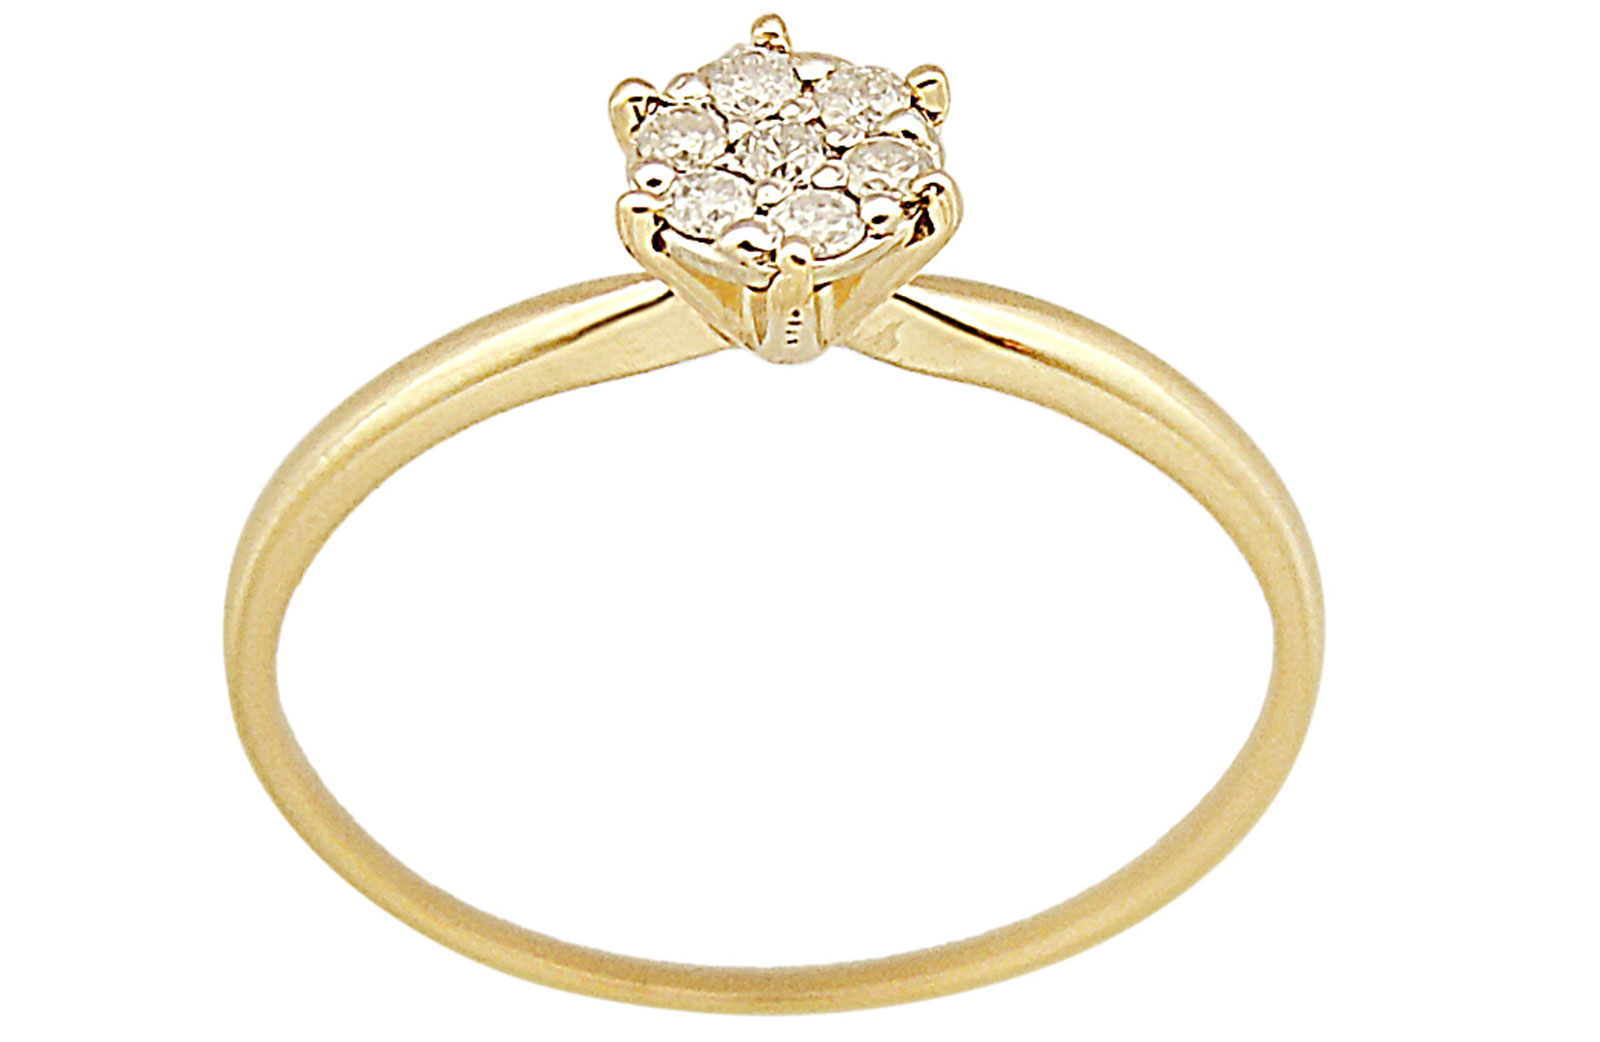 Vera Perla 18K Solid Yellow Gold 0.07Cts Genuine Diamonds  Solitaire Ring